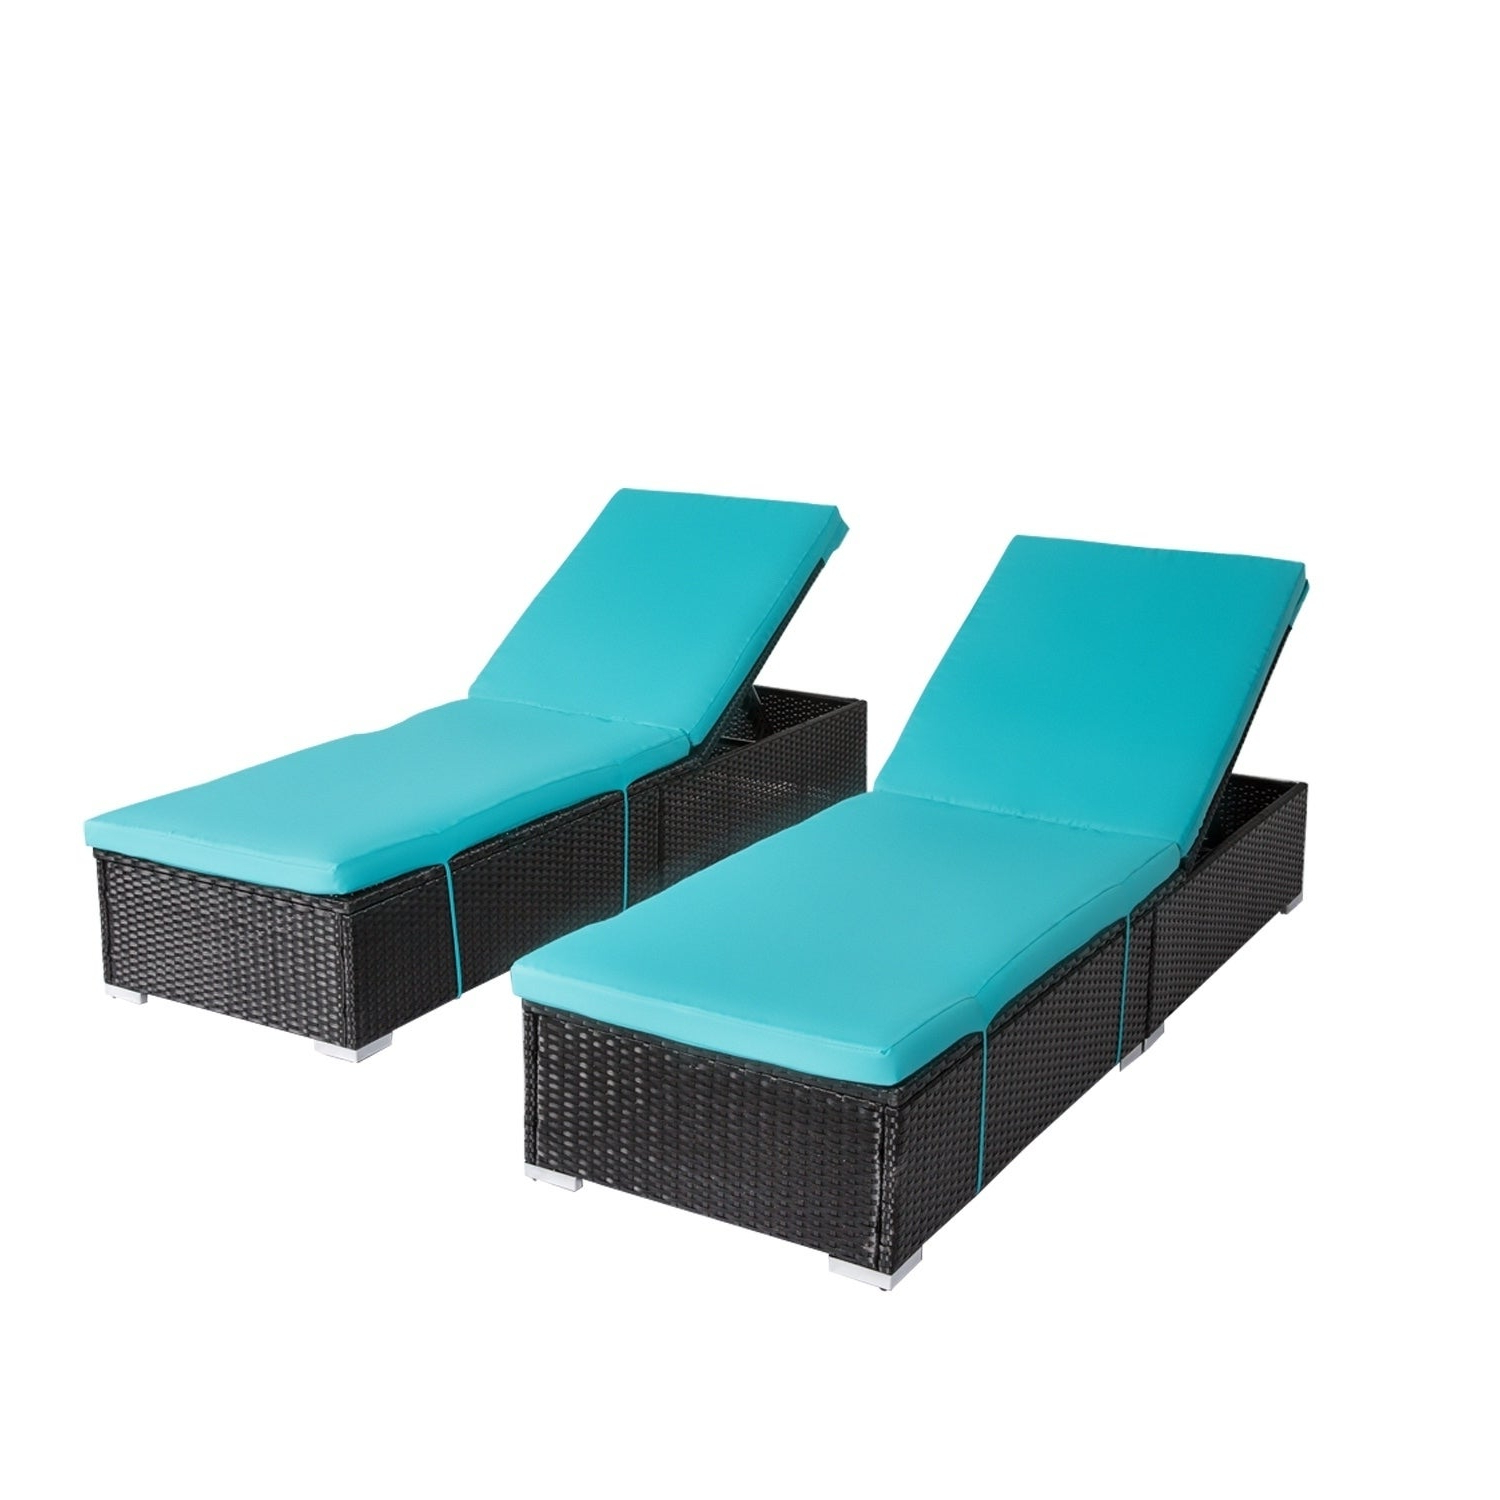 Adjustable Outdoor Wicker Chaise Lounge Chairs With Cushion Intended For Widely Used Kinbor Outdoor Adjustable Chaise Lounge Chair Pe Rattan Wicker Chaise Pool  Chairs W/cushions (View 4 of 25)